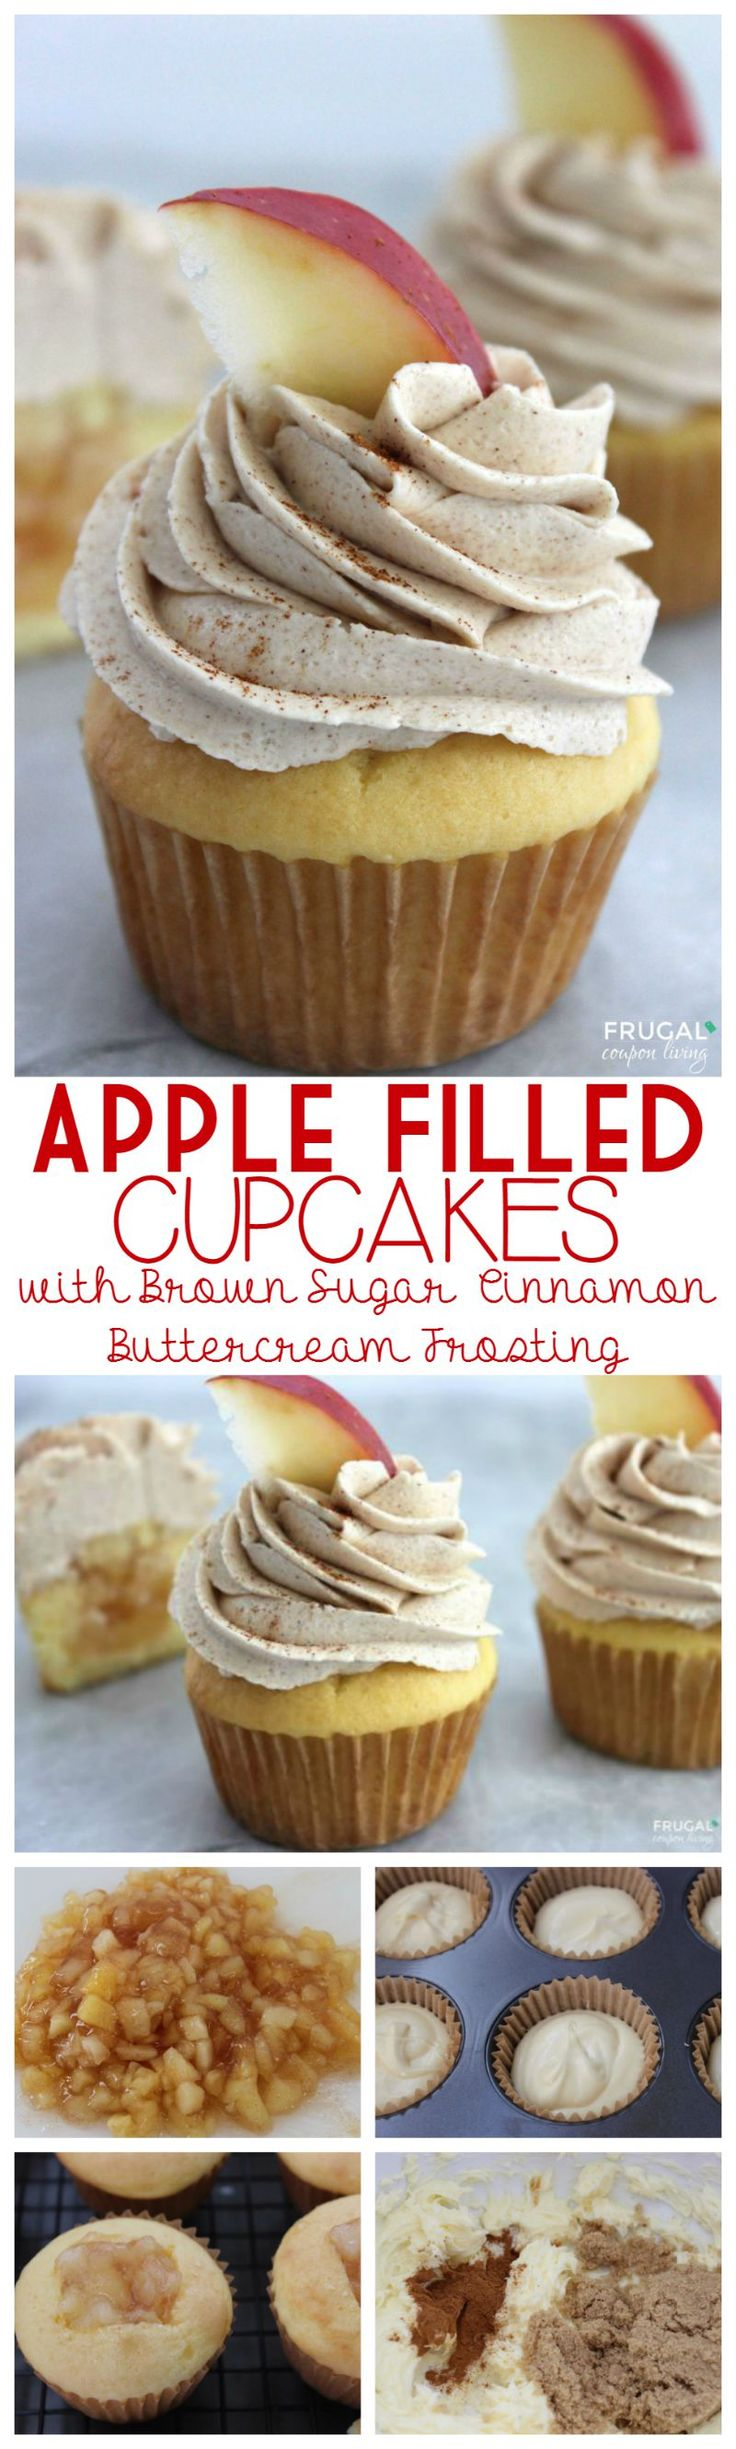 Apple Filled Cupcakes with Brown Sugar, Cinnamon Buttercream Homemade Frosting. Great Fall Cupcake Recipe Idea.